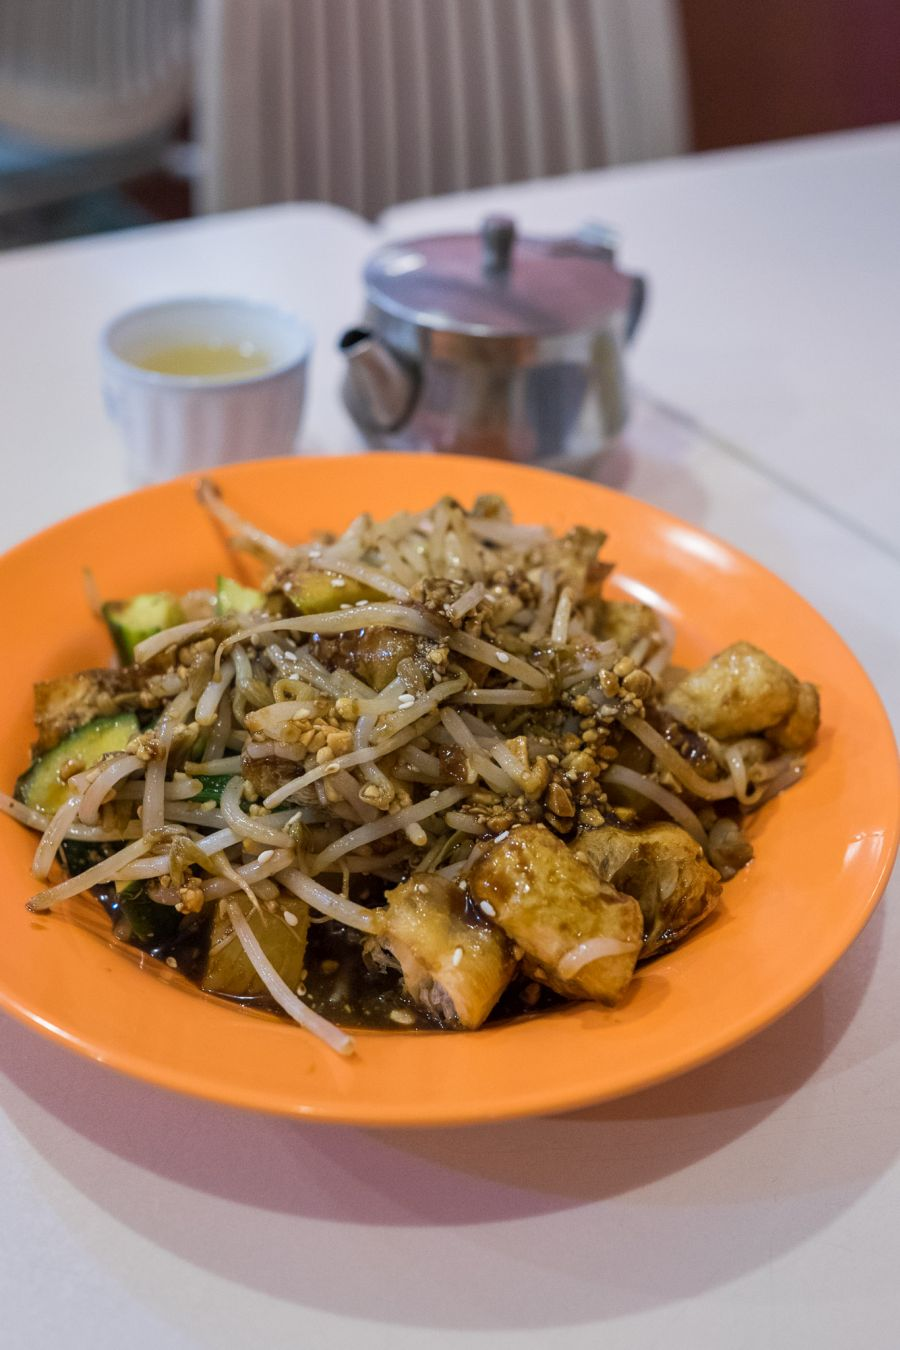 Chinese rojak (AU$8) with blanched beansprouts, cucumber, pineapple, apple, fried tow pok tossed with ground roasted peanuts and shrimp paste